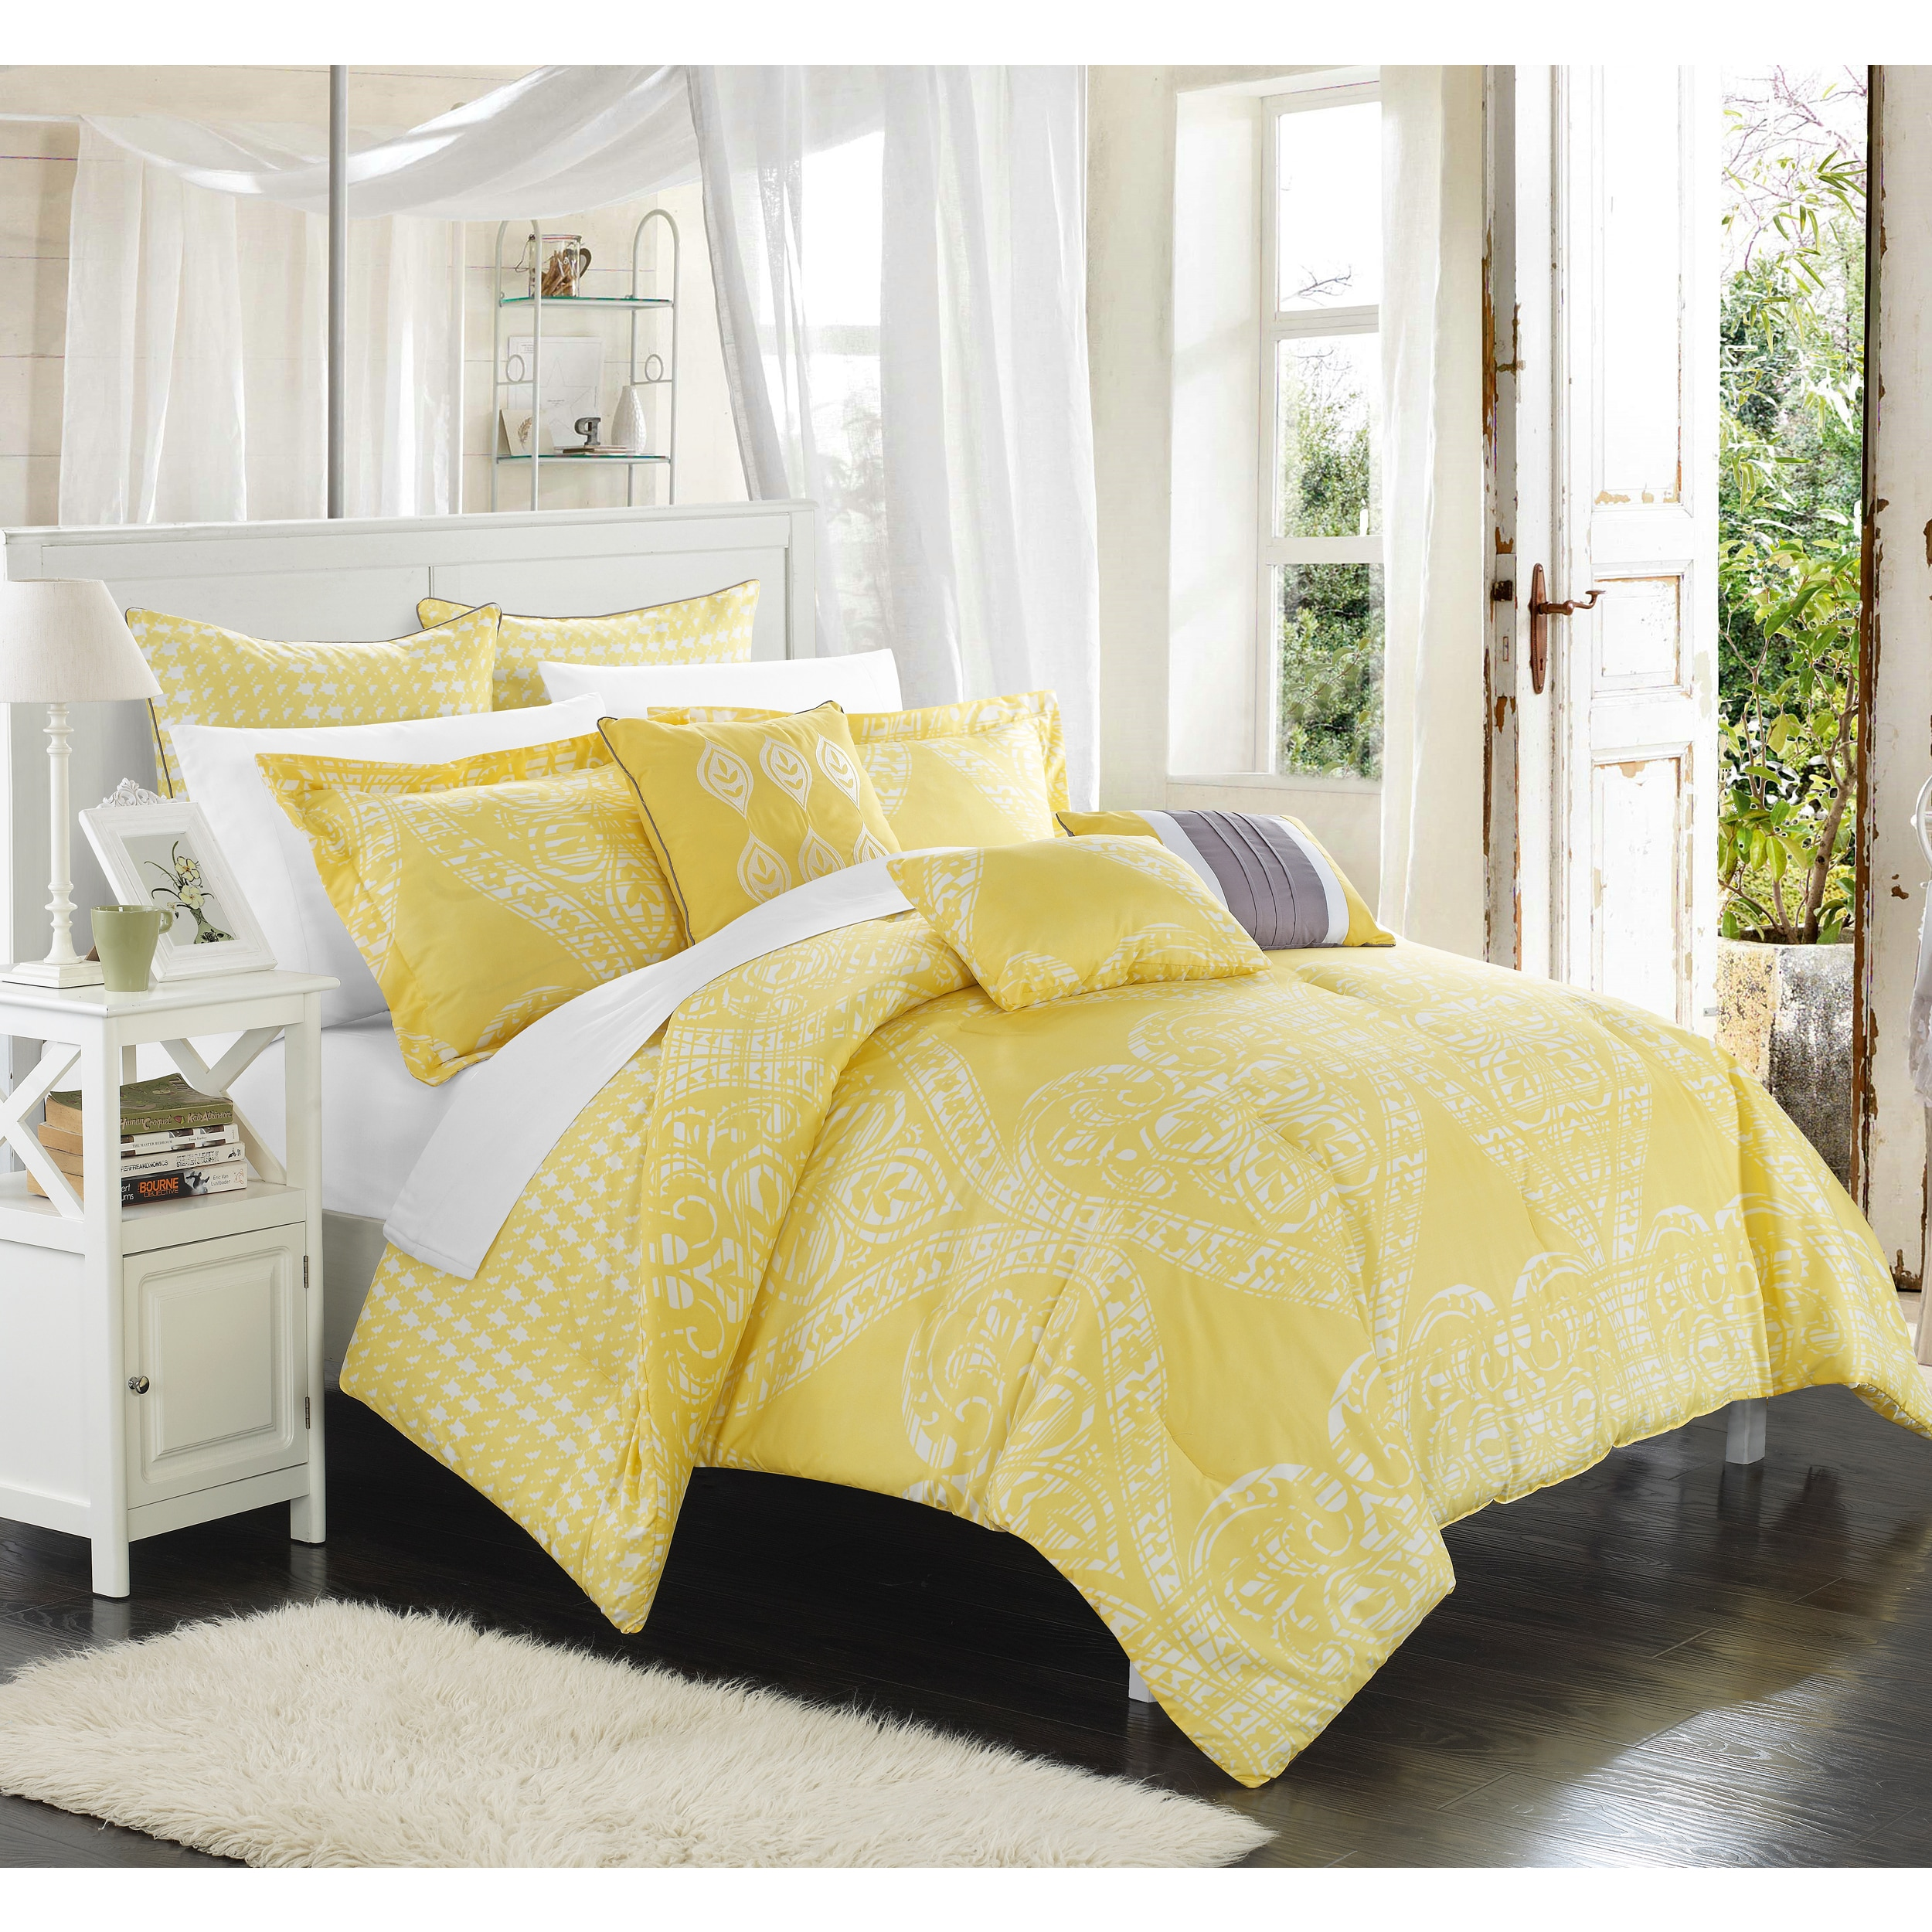 uncategorized wicked double doona size grey queen top king duvet green yellow dark covers light set gold velvet sets winter bedding white print floral cover and cheap pink canada